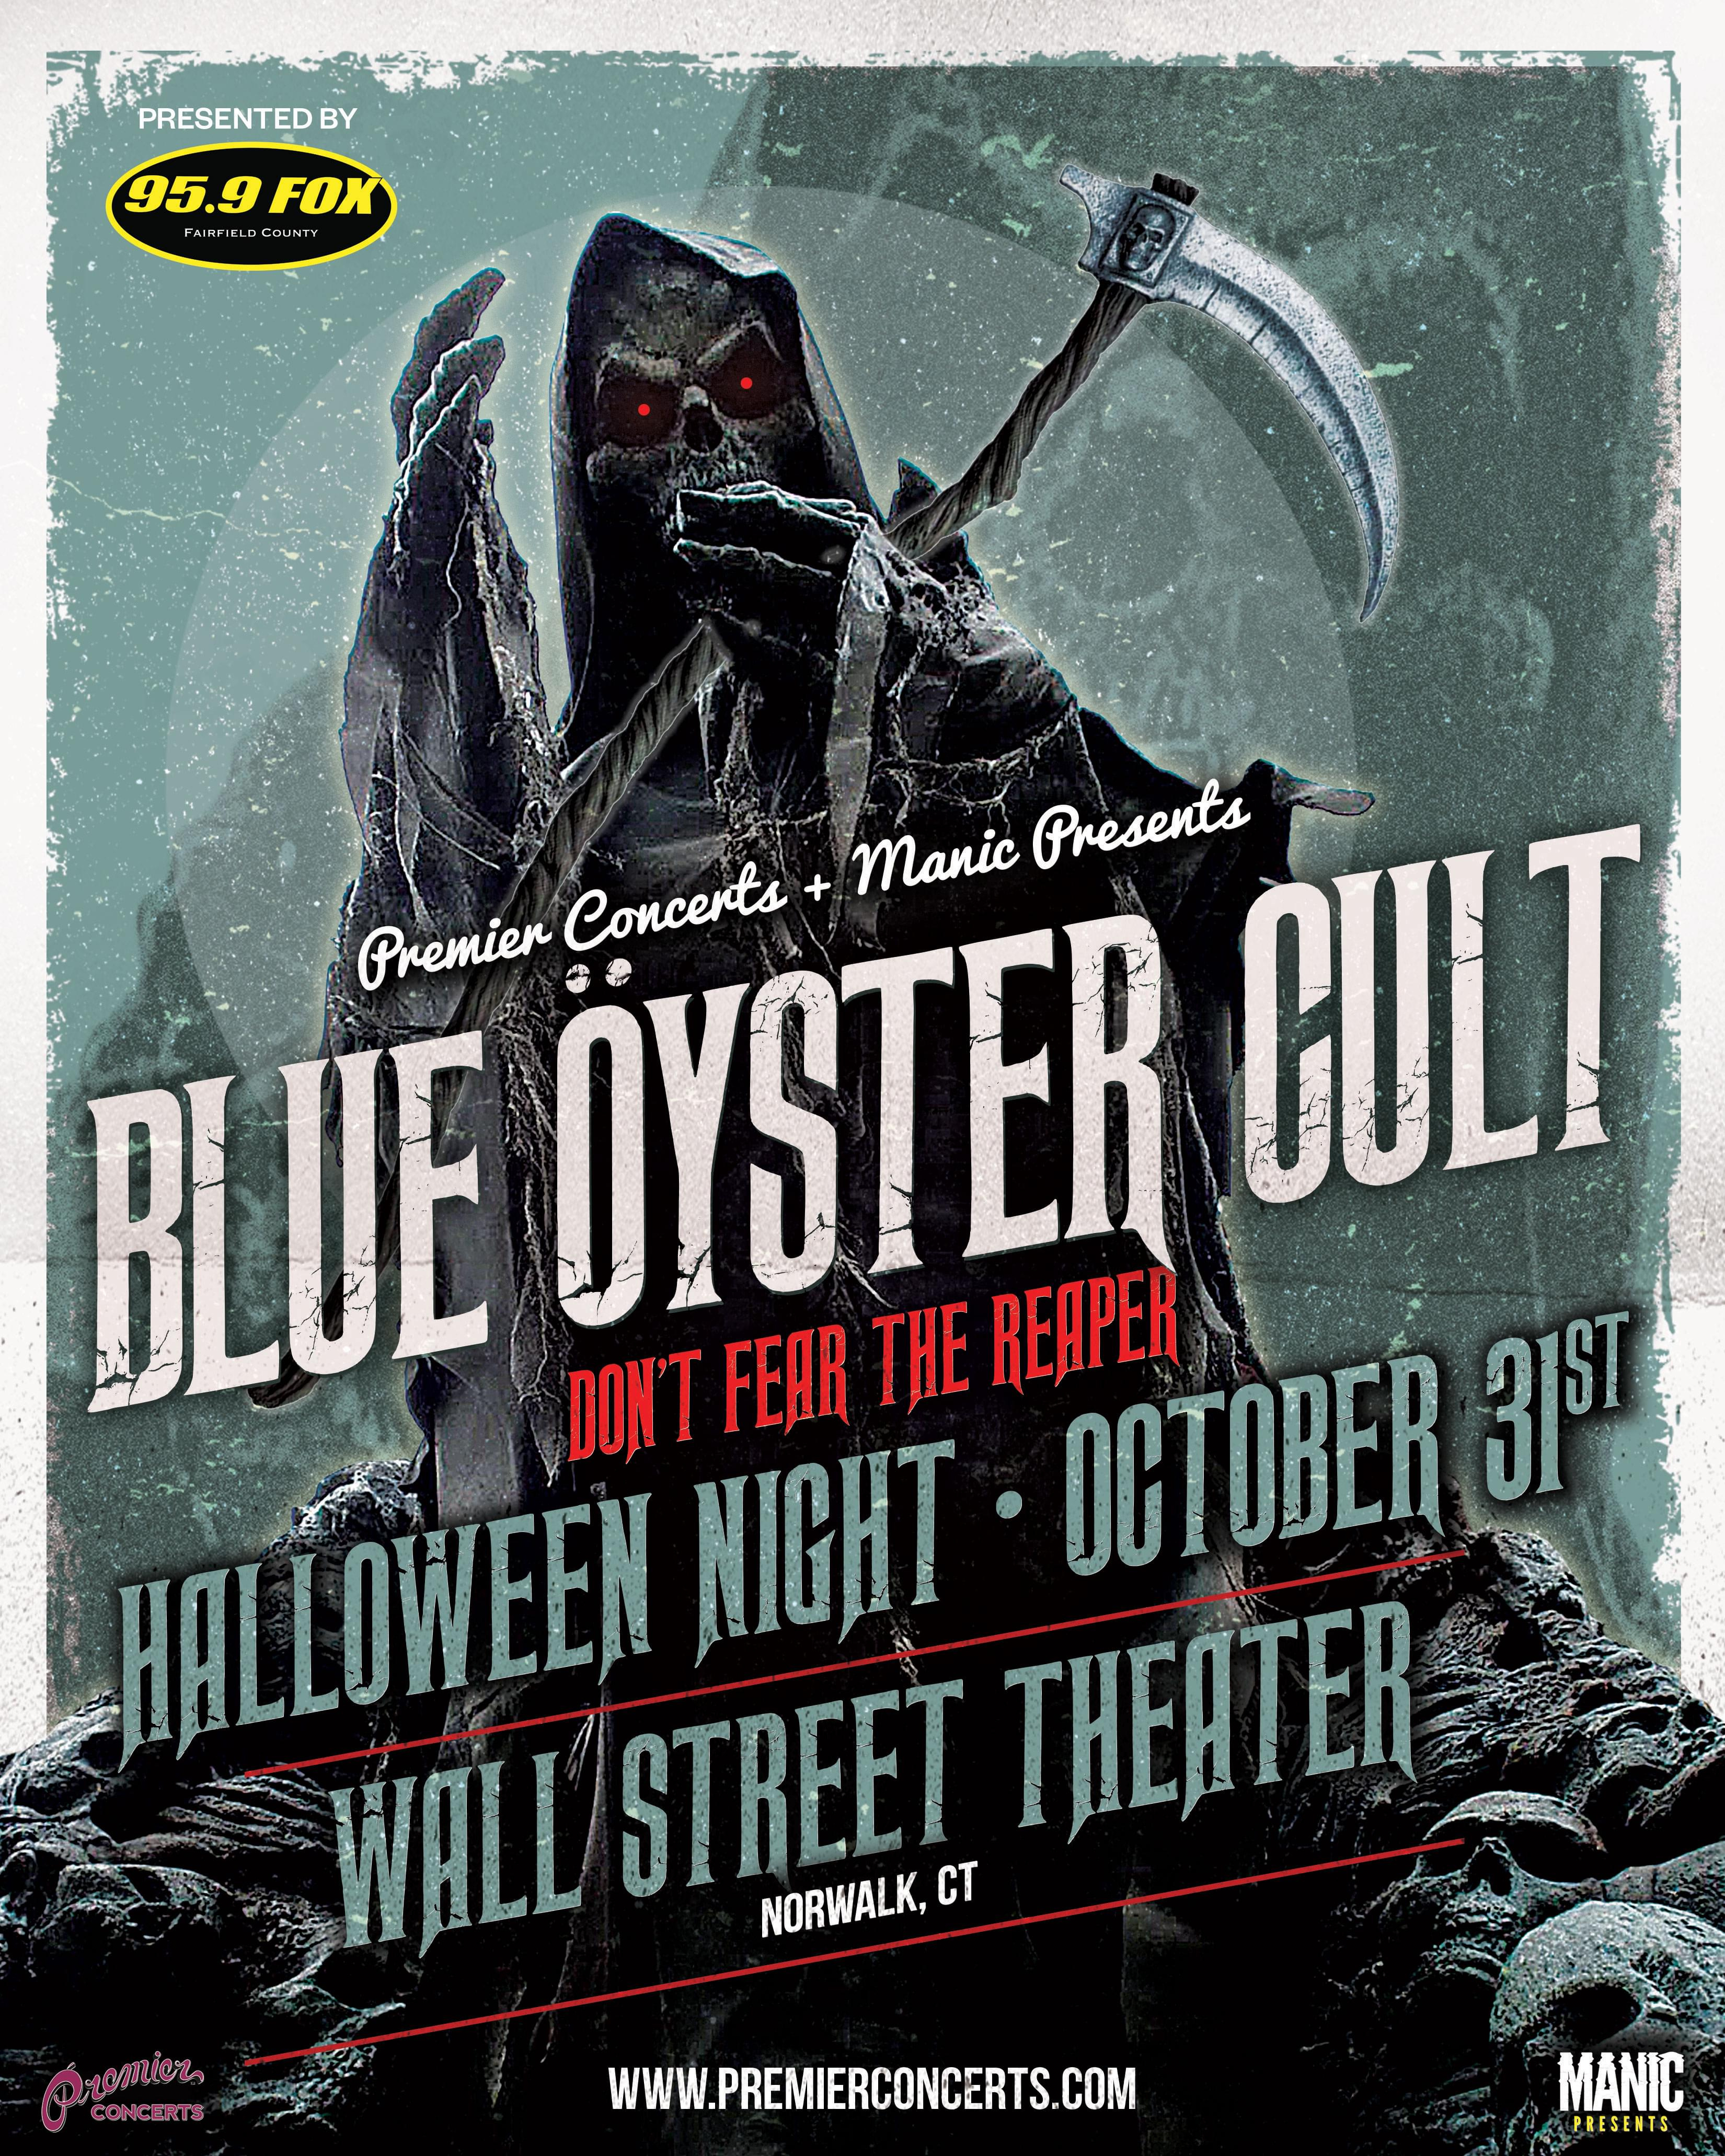 95.9 THE FOX presents Blue Öyster Cult: Don't Fear The Reaper